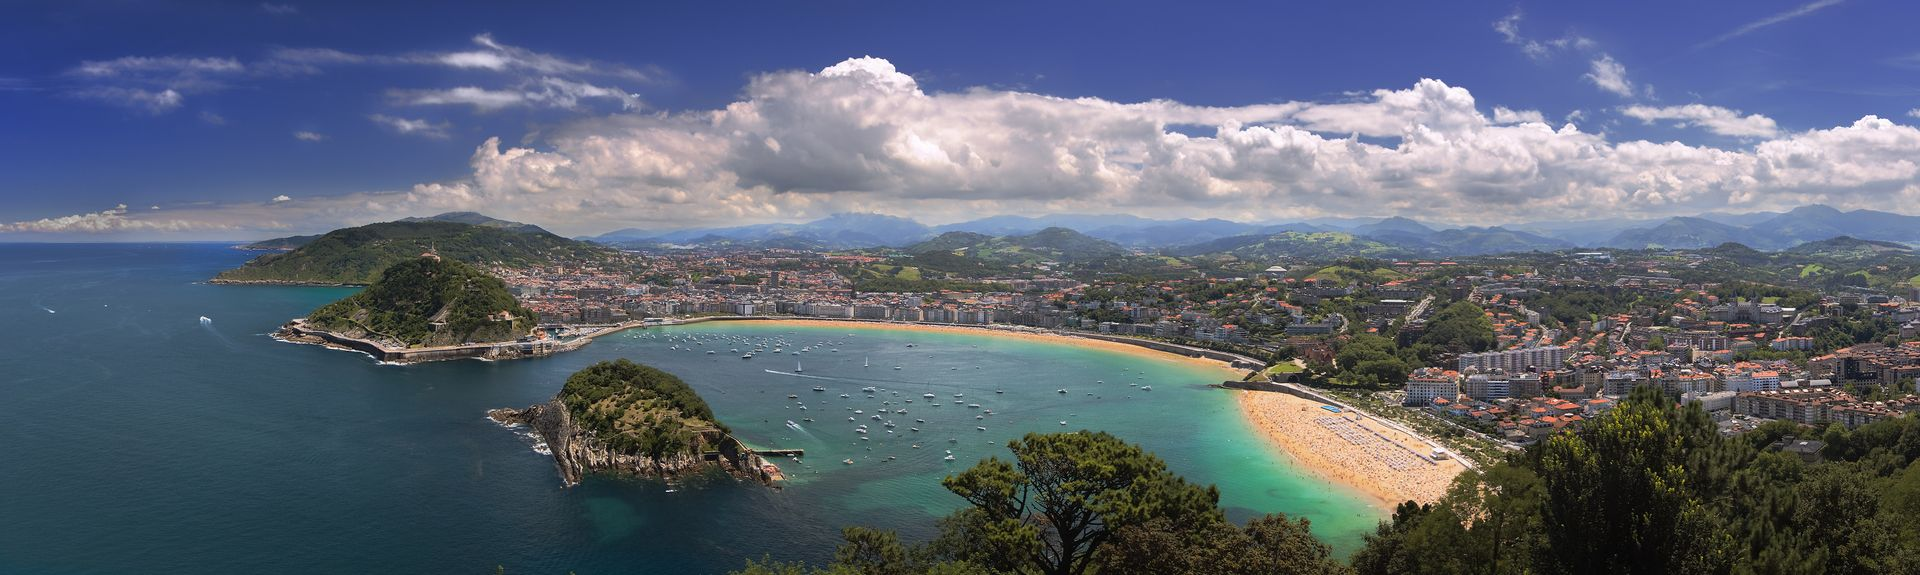 Concha Beach, San Sebastian, Basque Country, Spain